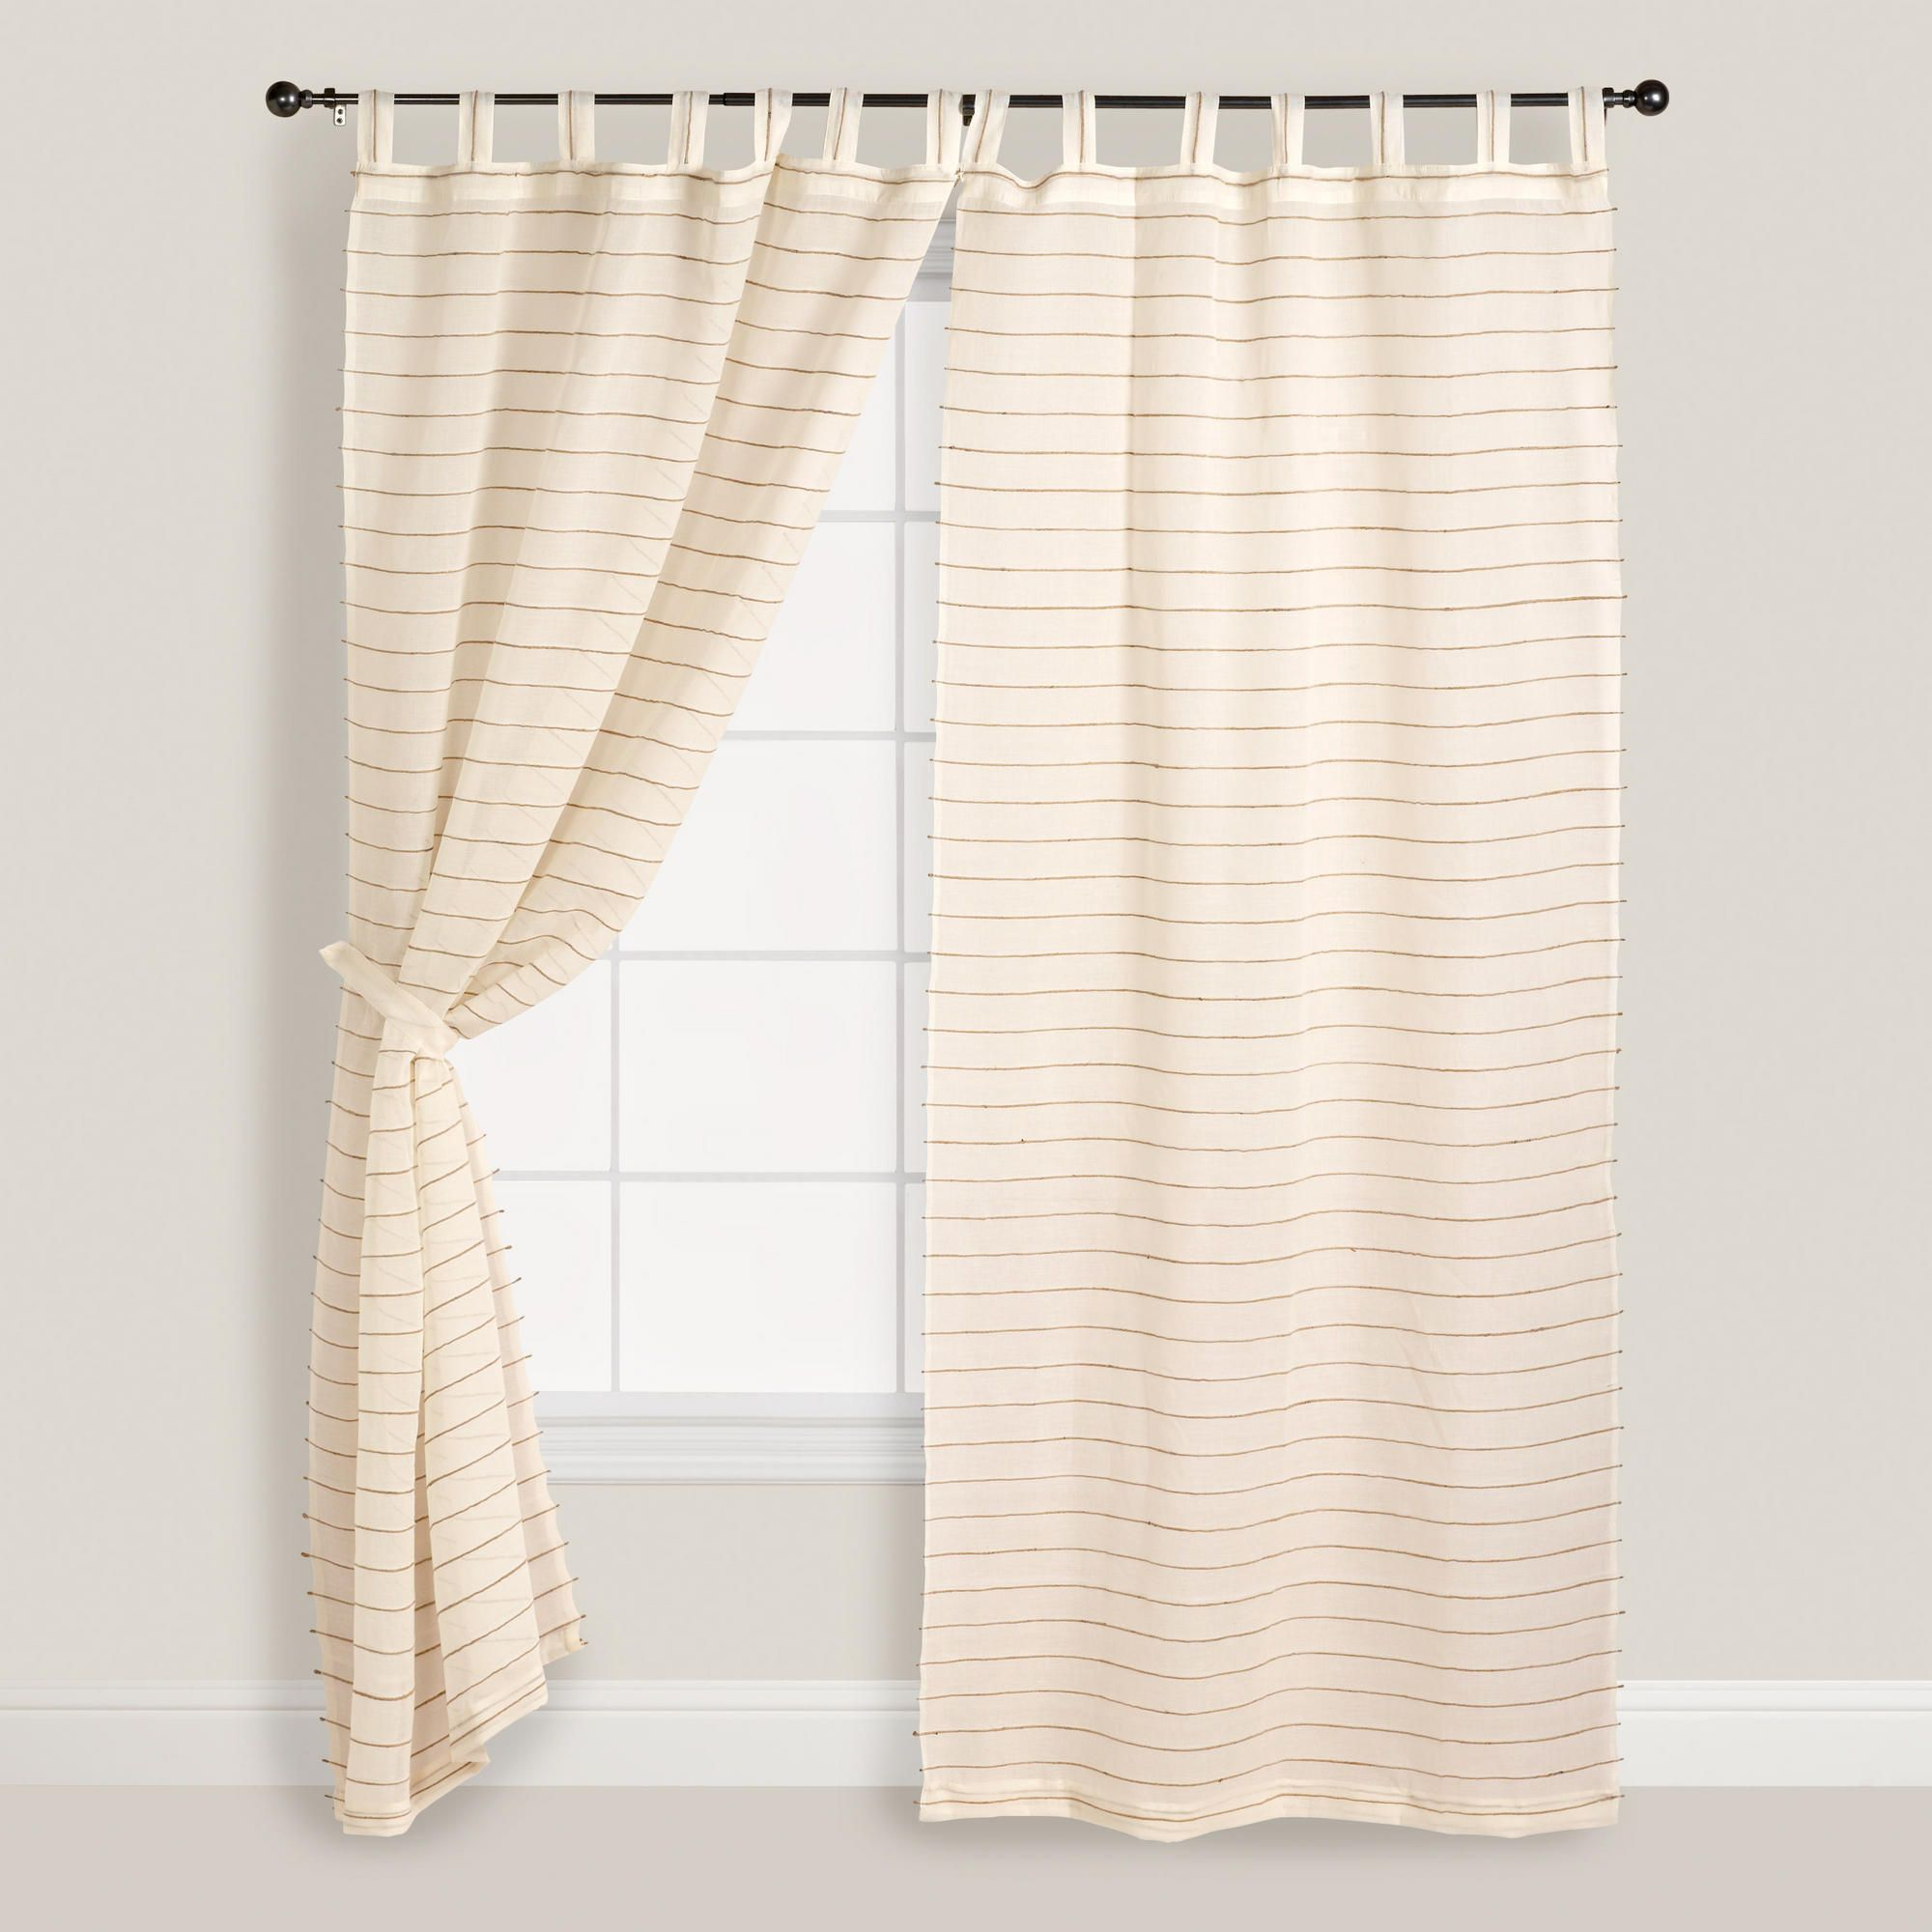 rod pretty c extra home kitchen walmart curtains shower for beautiful curtain depot ideas stewart using discount martha rods long decoration